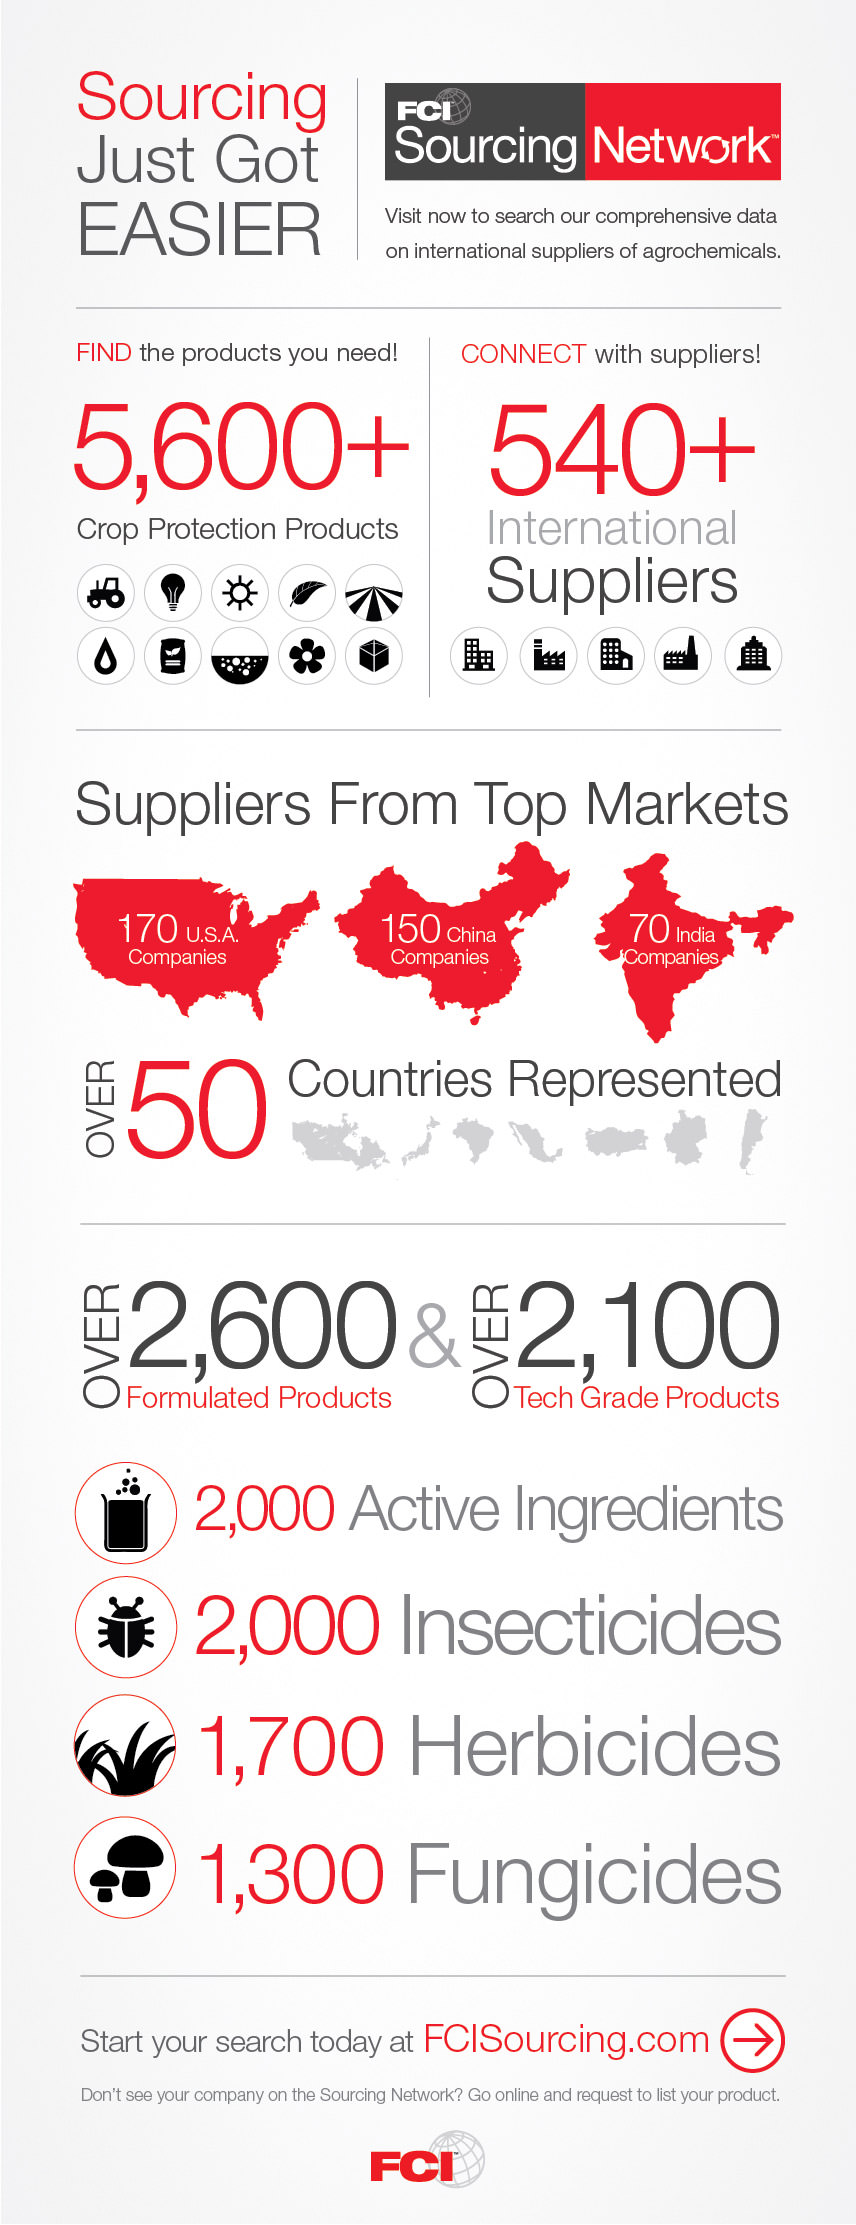 FCI Sourcing Network Infographic